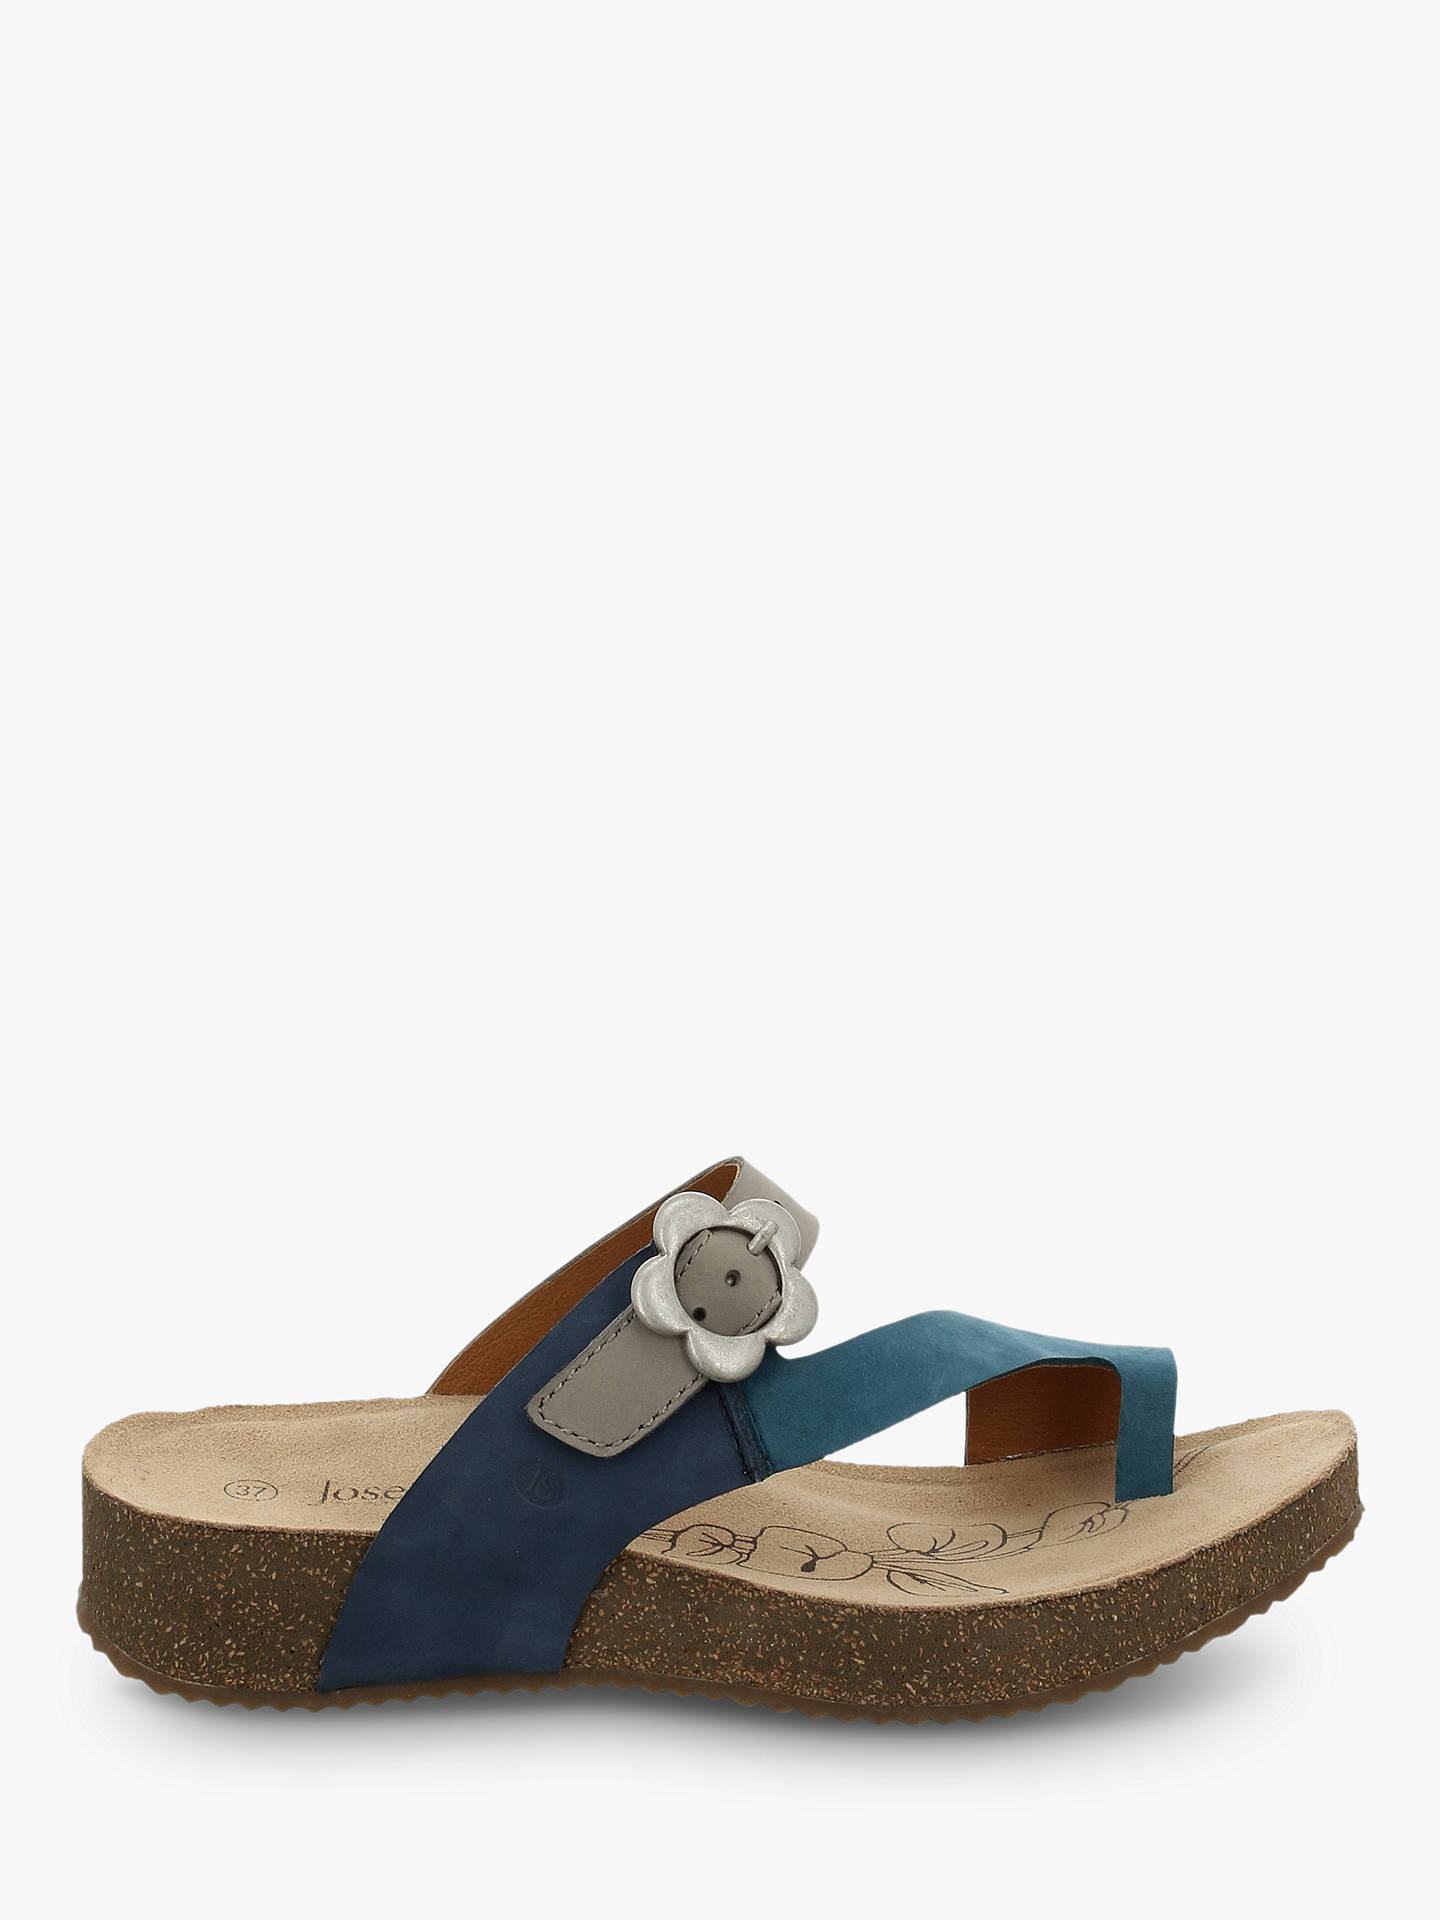 Buy Josef Seibel Tonga 23 Toe Post Flower Buckle Sandals, Blau Kombi, 7 Online at johnlewis.com